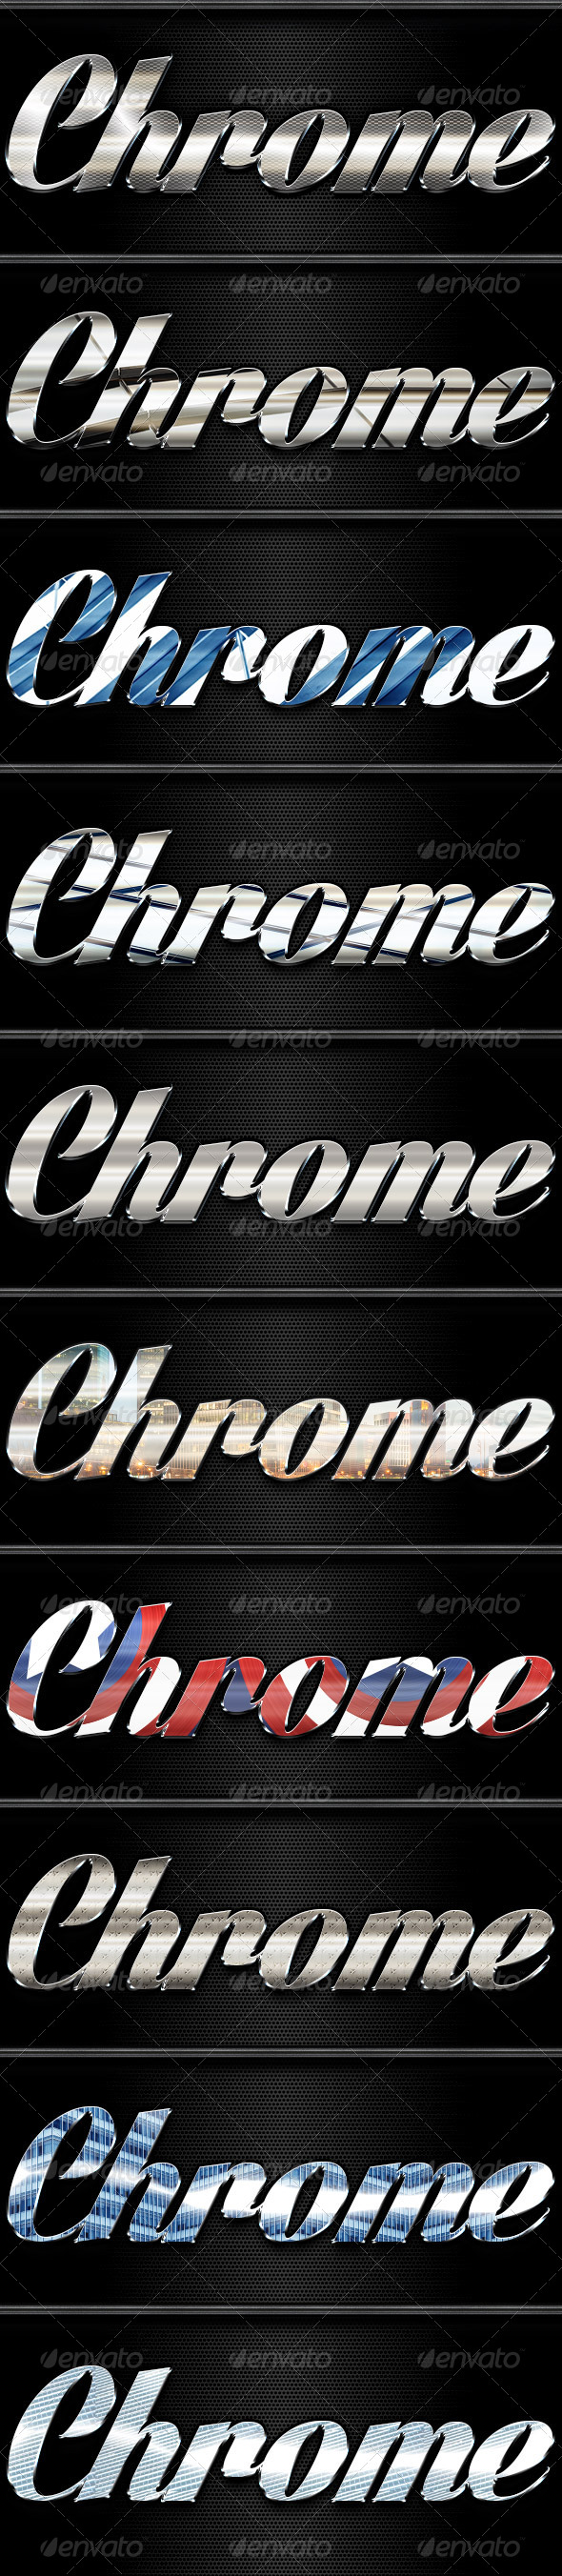 10 Chrome Styles - Text Effects Styles